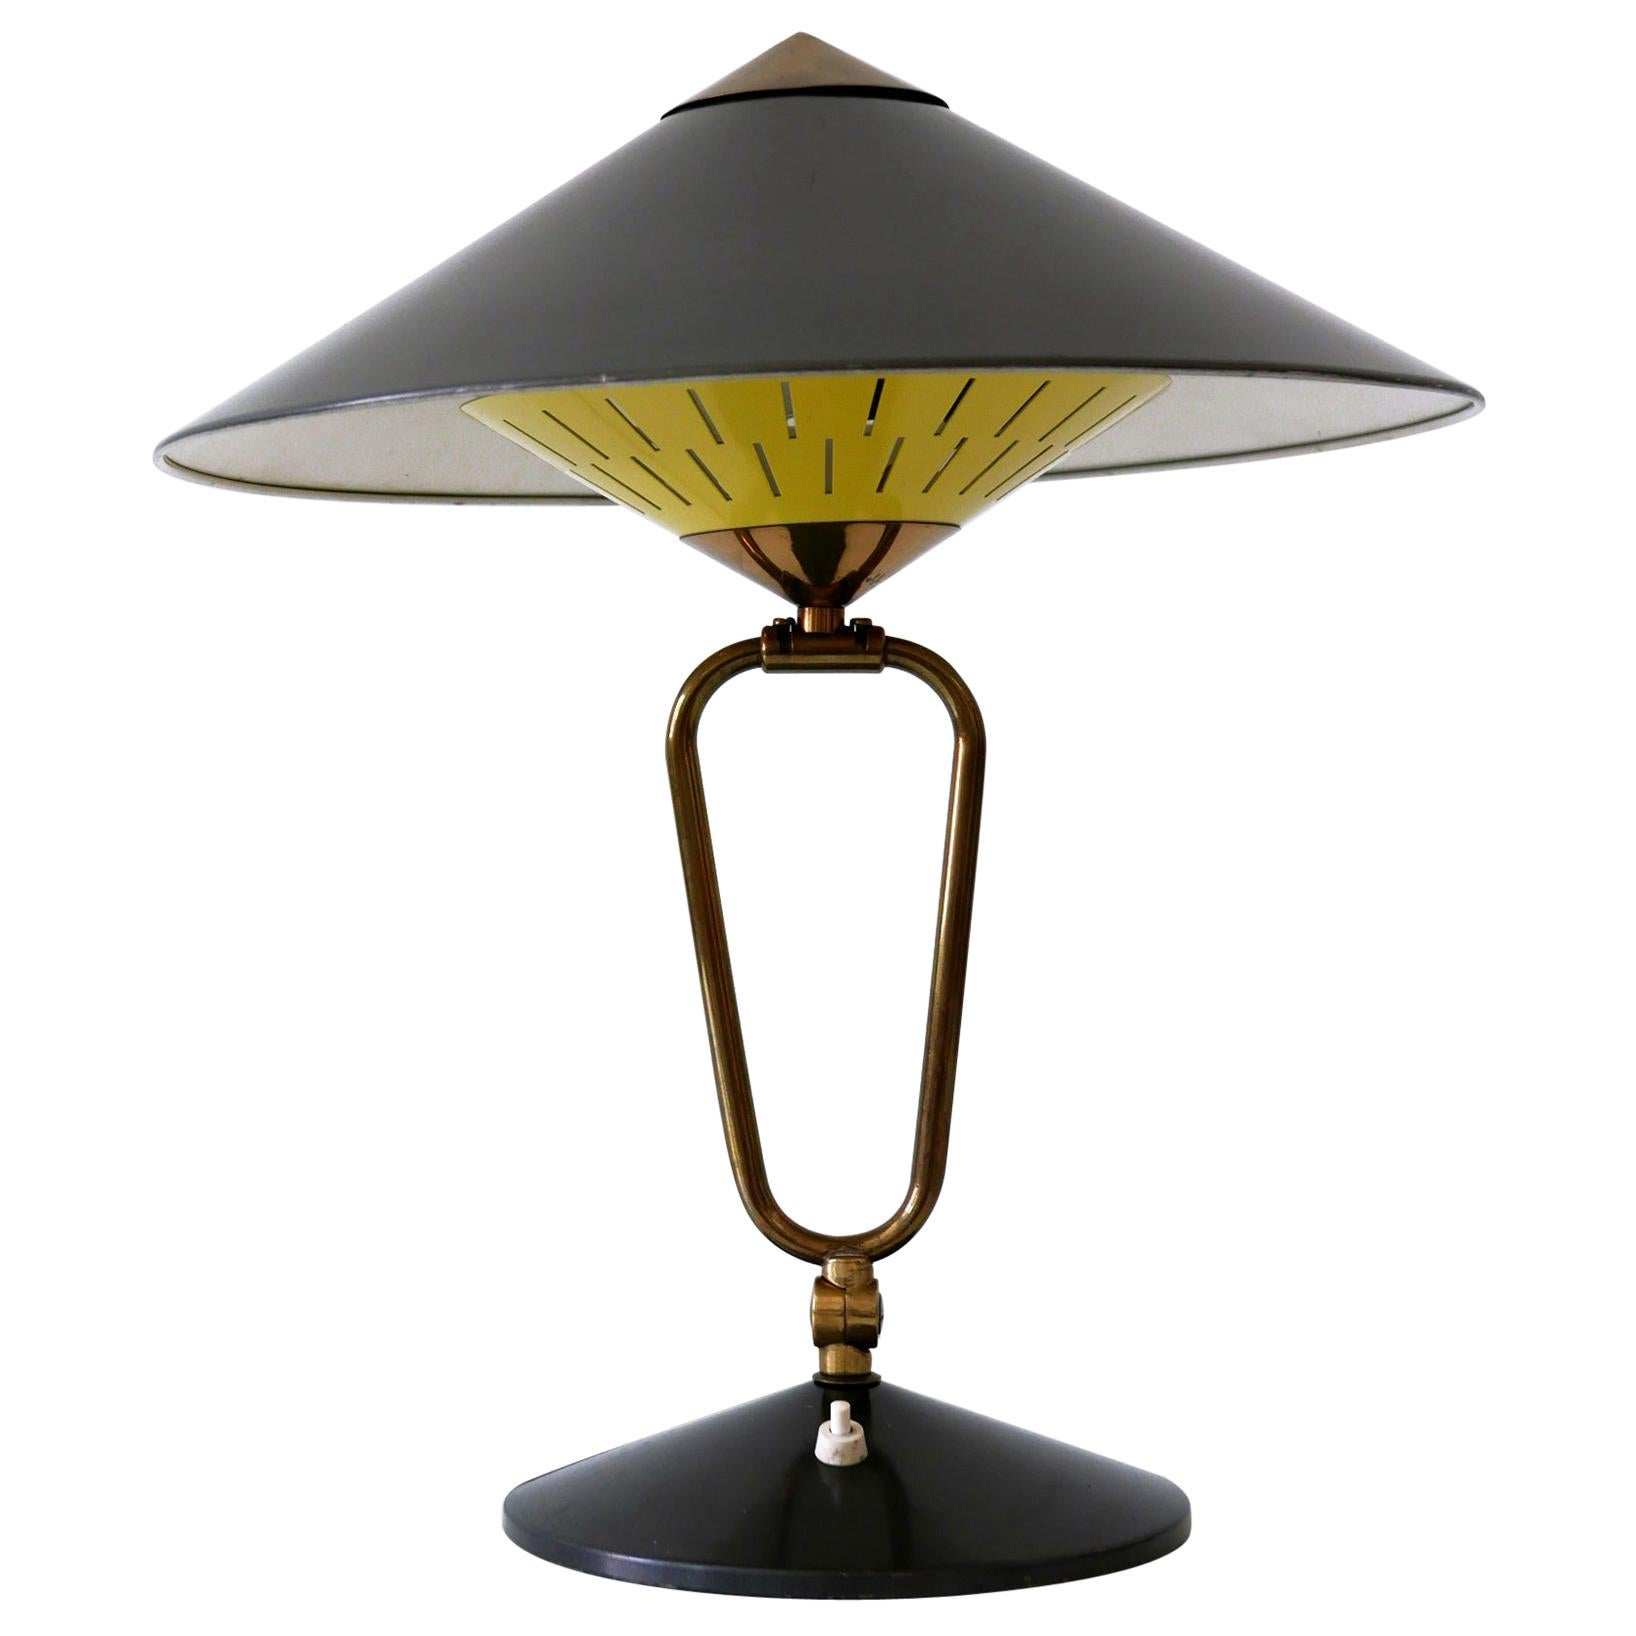 Articulated Large Mid-Century Modern Table Lamp or Wall Sconce 'Witch Hut' 1950s